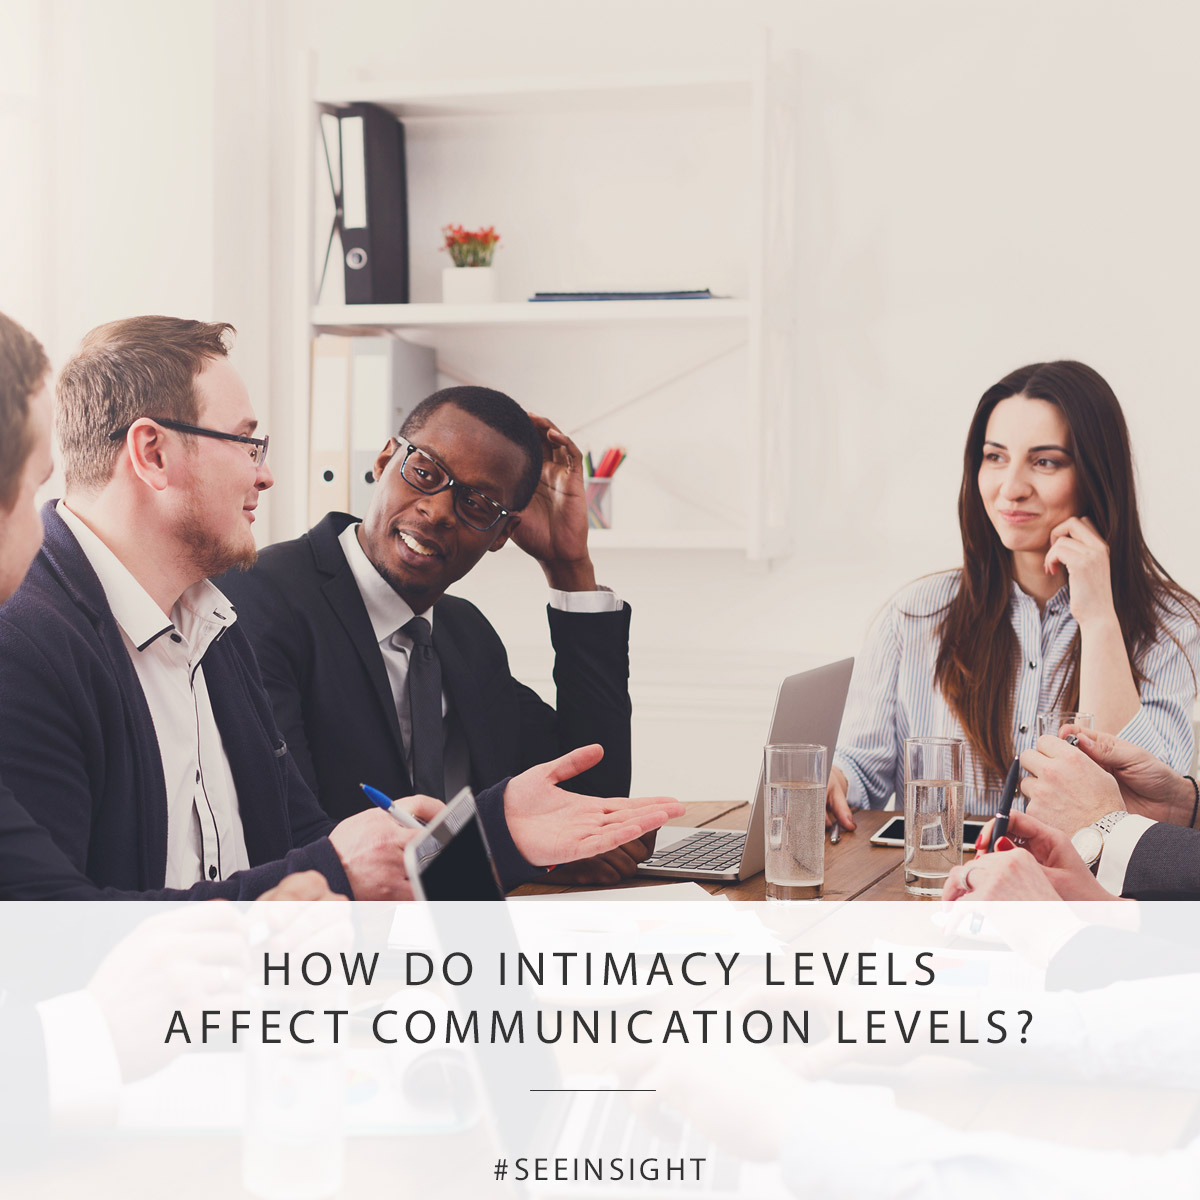 How do intimacy levels affect communication levels?